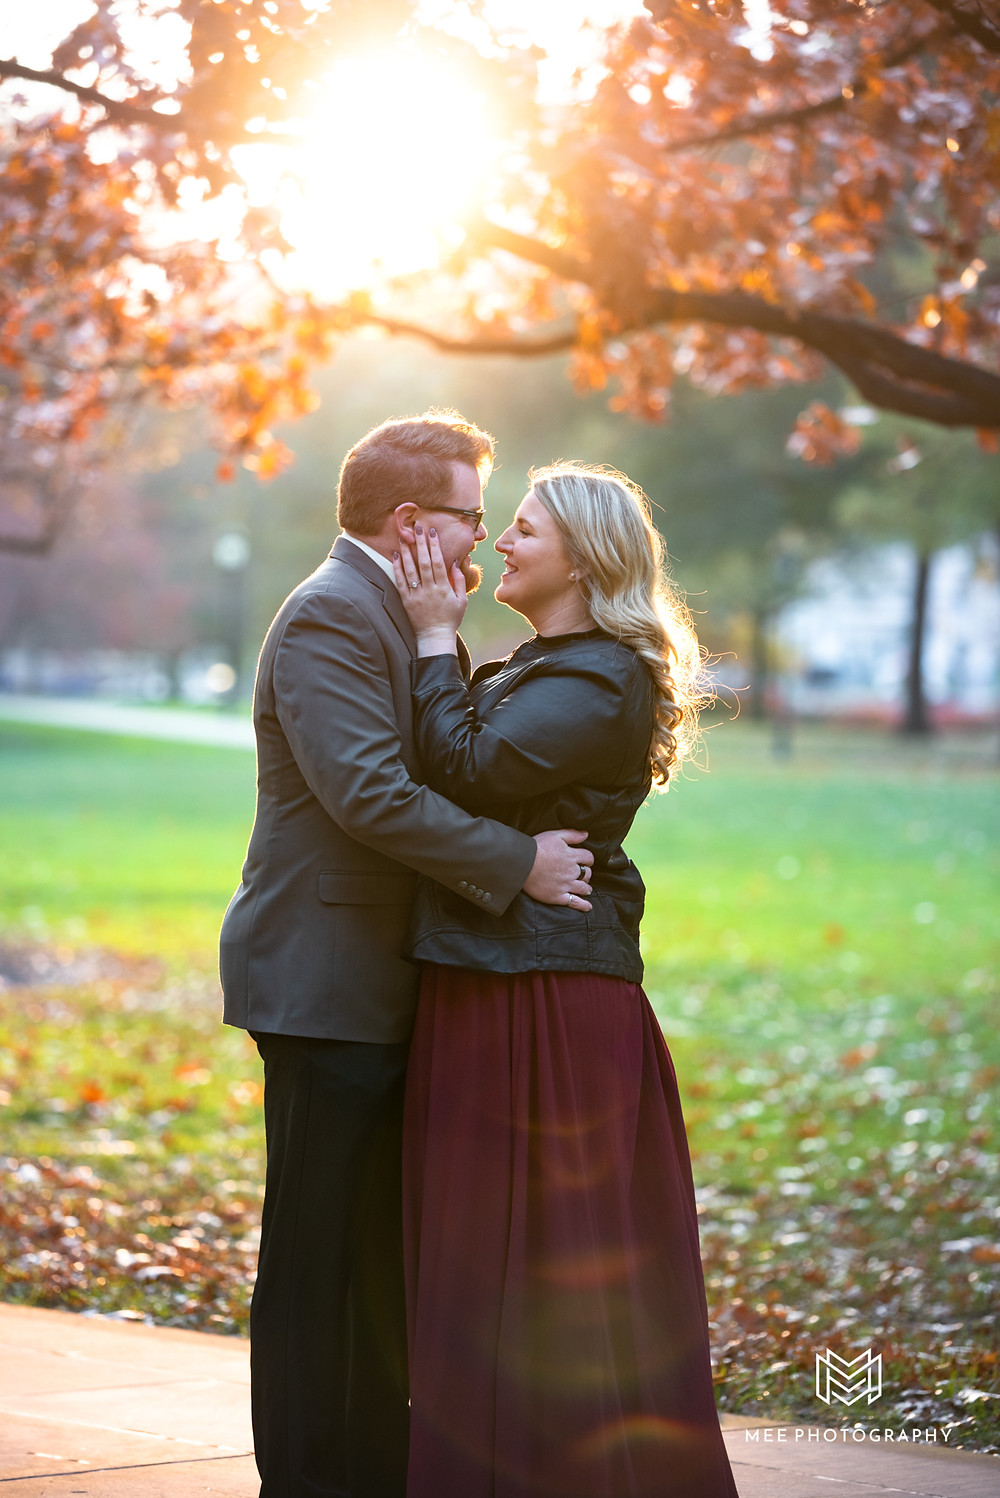 Oakland, Pittsburgh winter engagement session at sunset